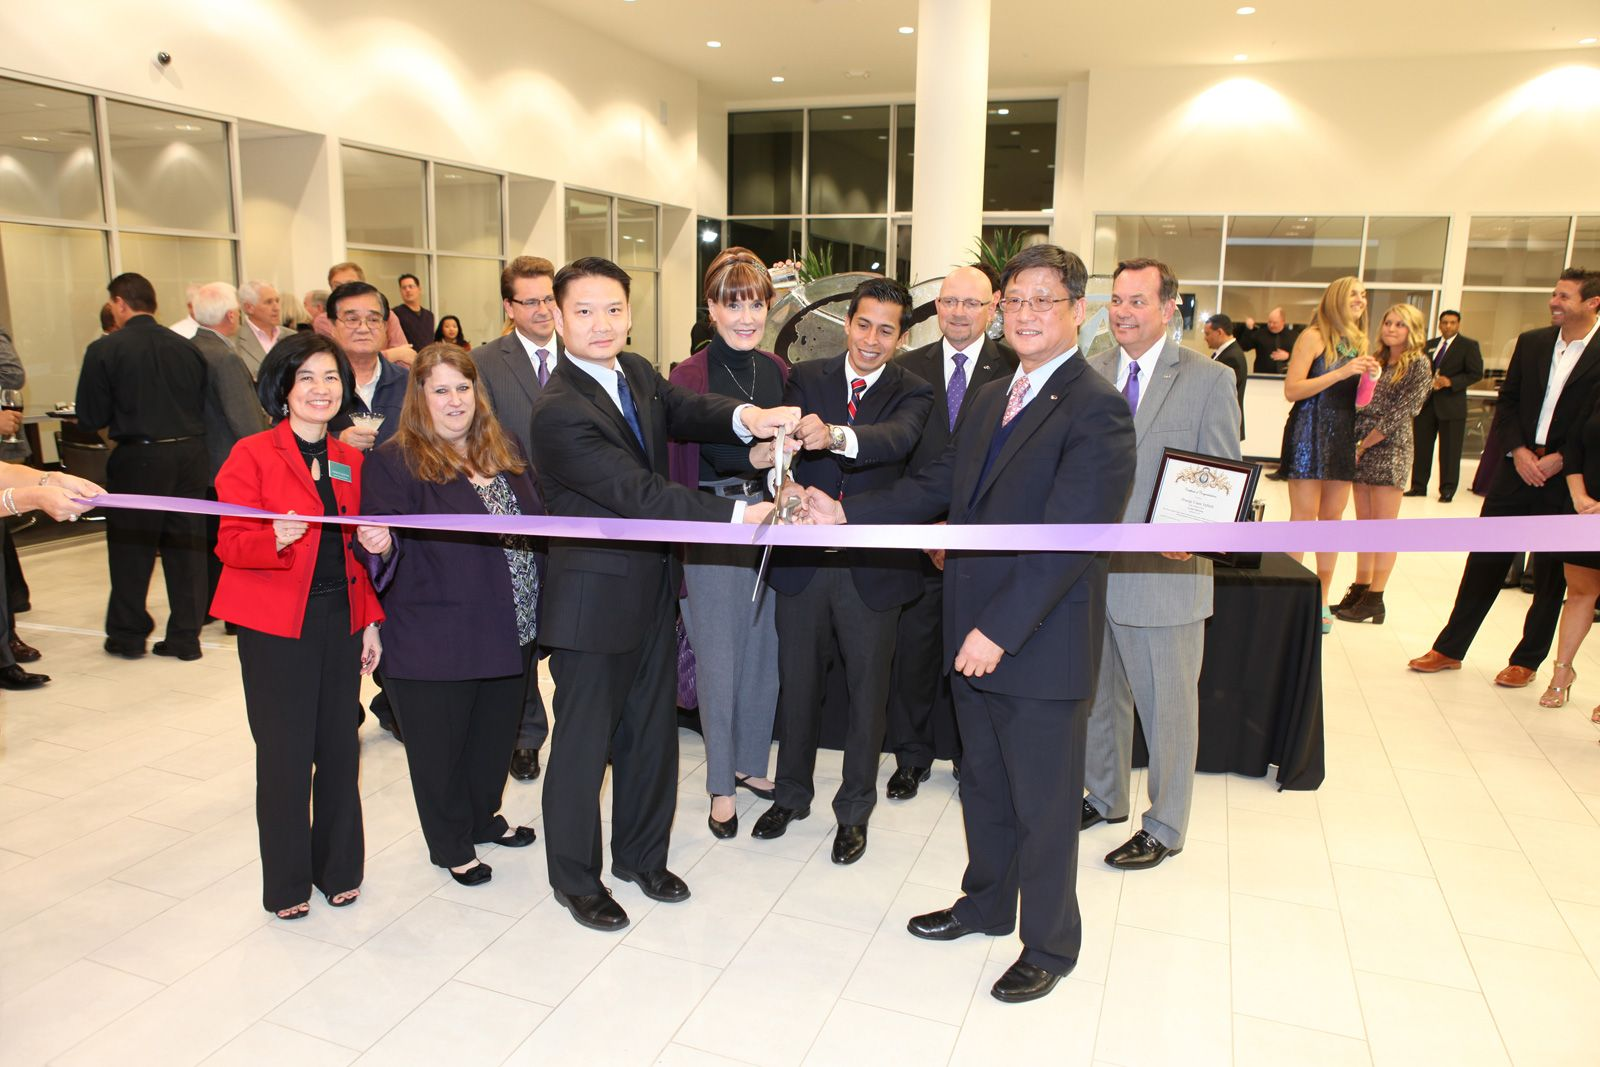 IMG_oc-infinti-cutting-ribbon.jpg